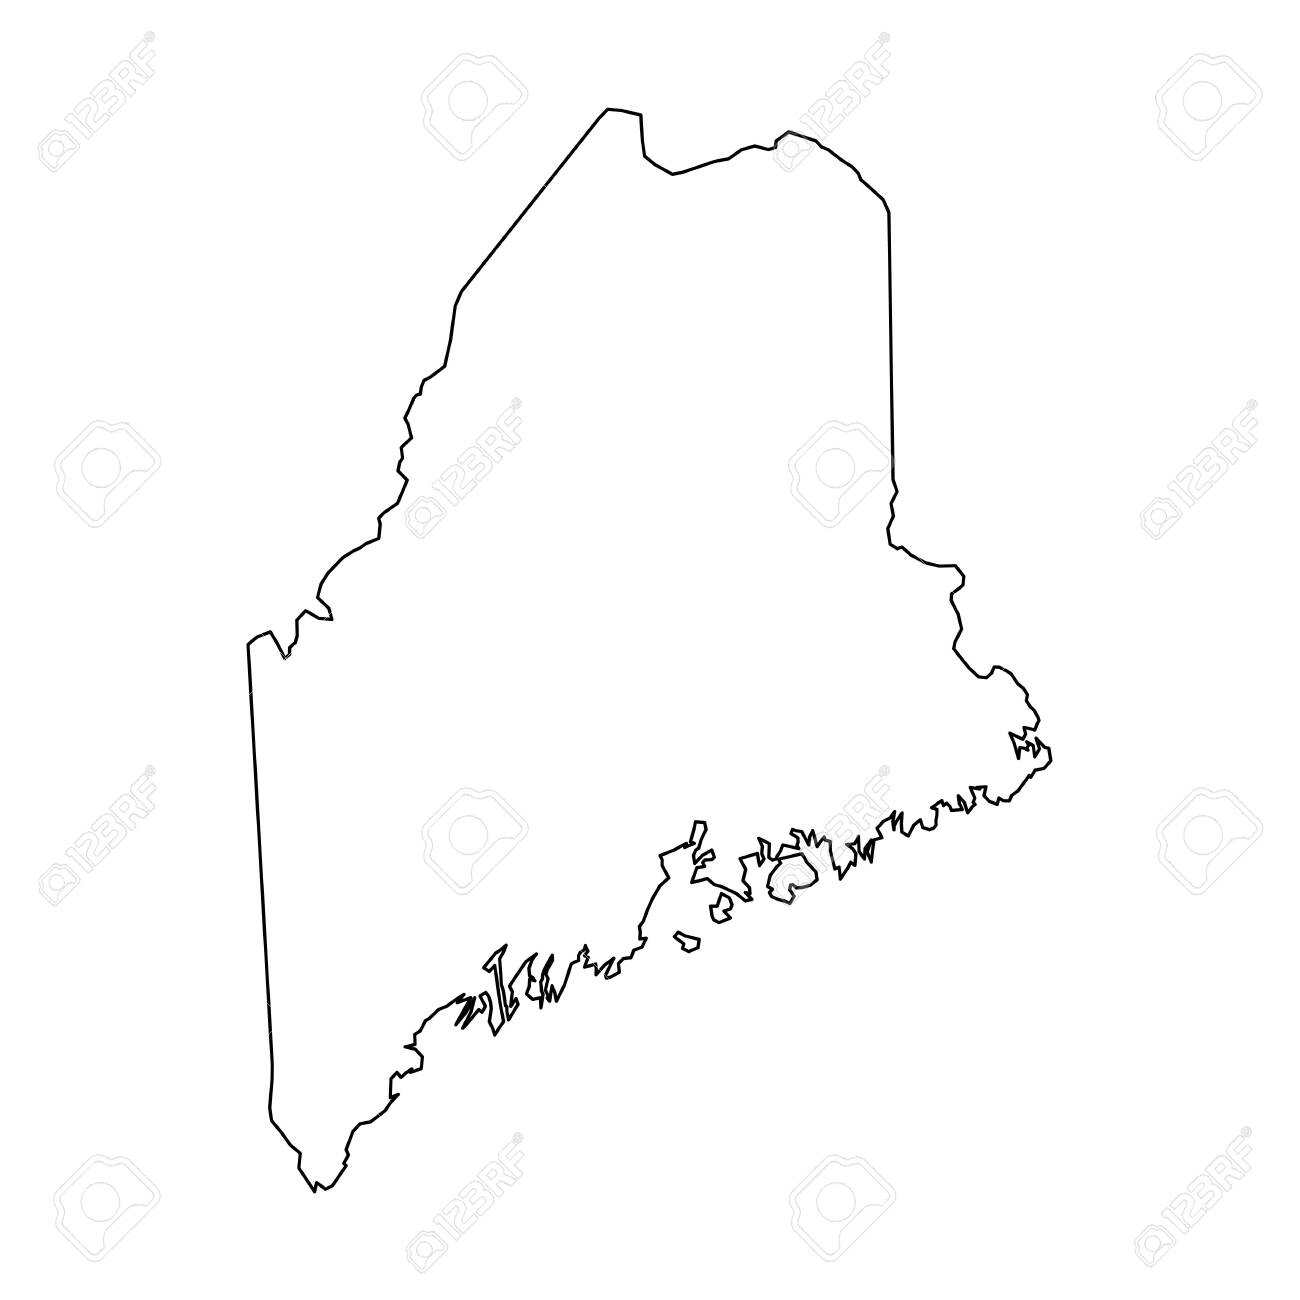 Maine, state of USA - solid black outline map of country area. Simple flat vector illustration. - 124448014